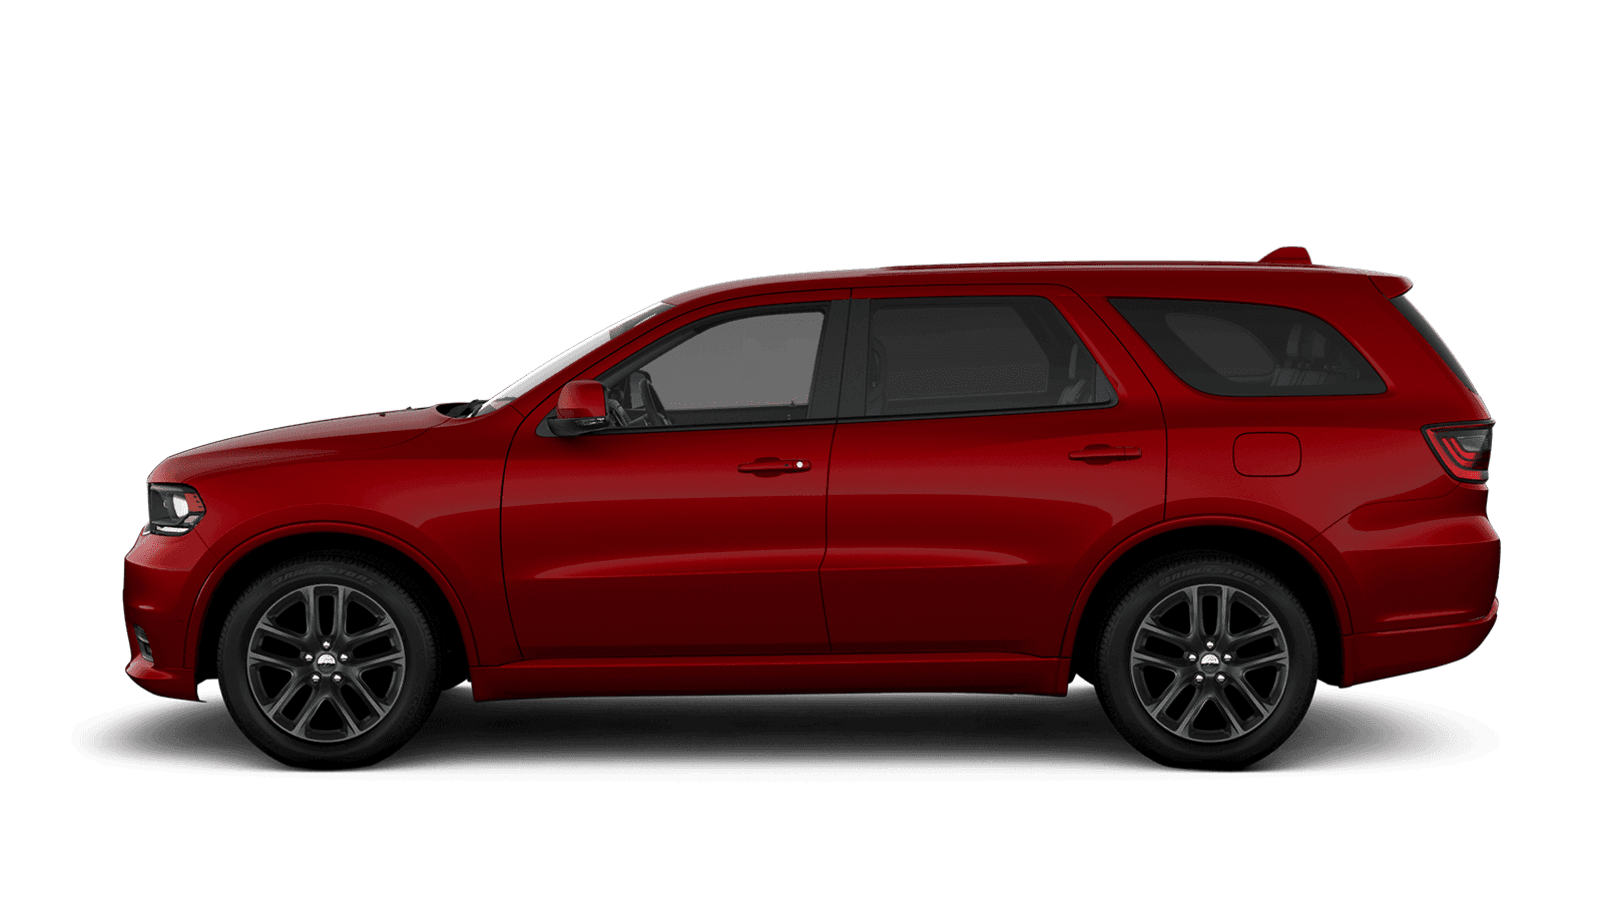 2021 Dodge Durango sideview with 20-inch Hyper Black aluminum wheels